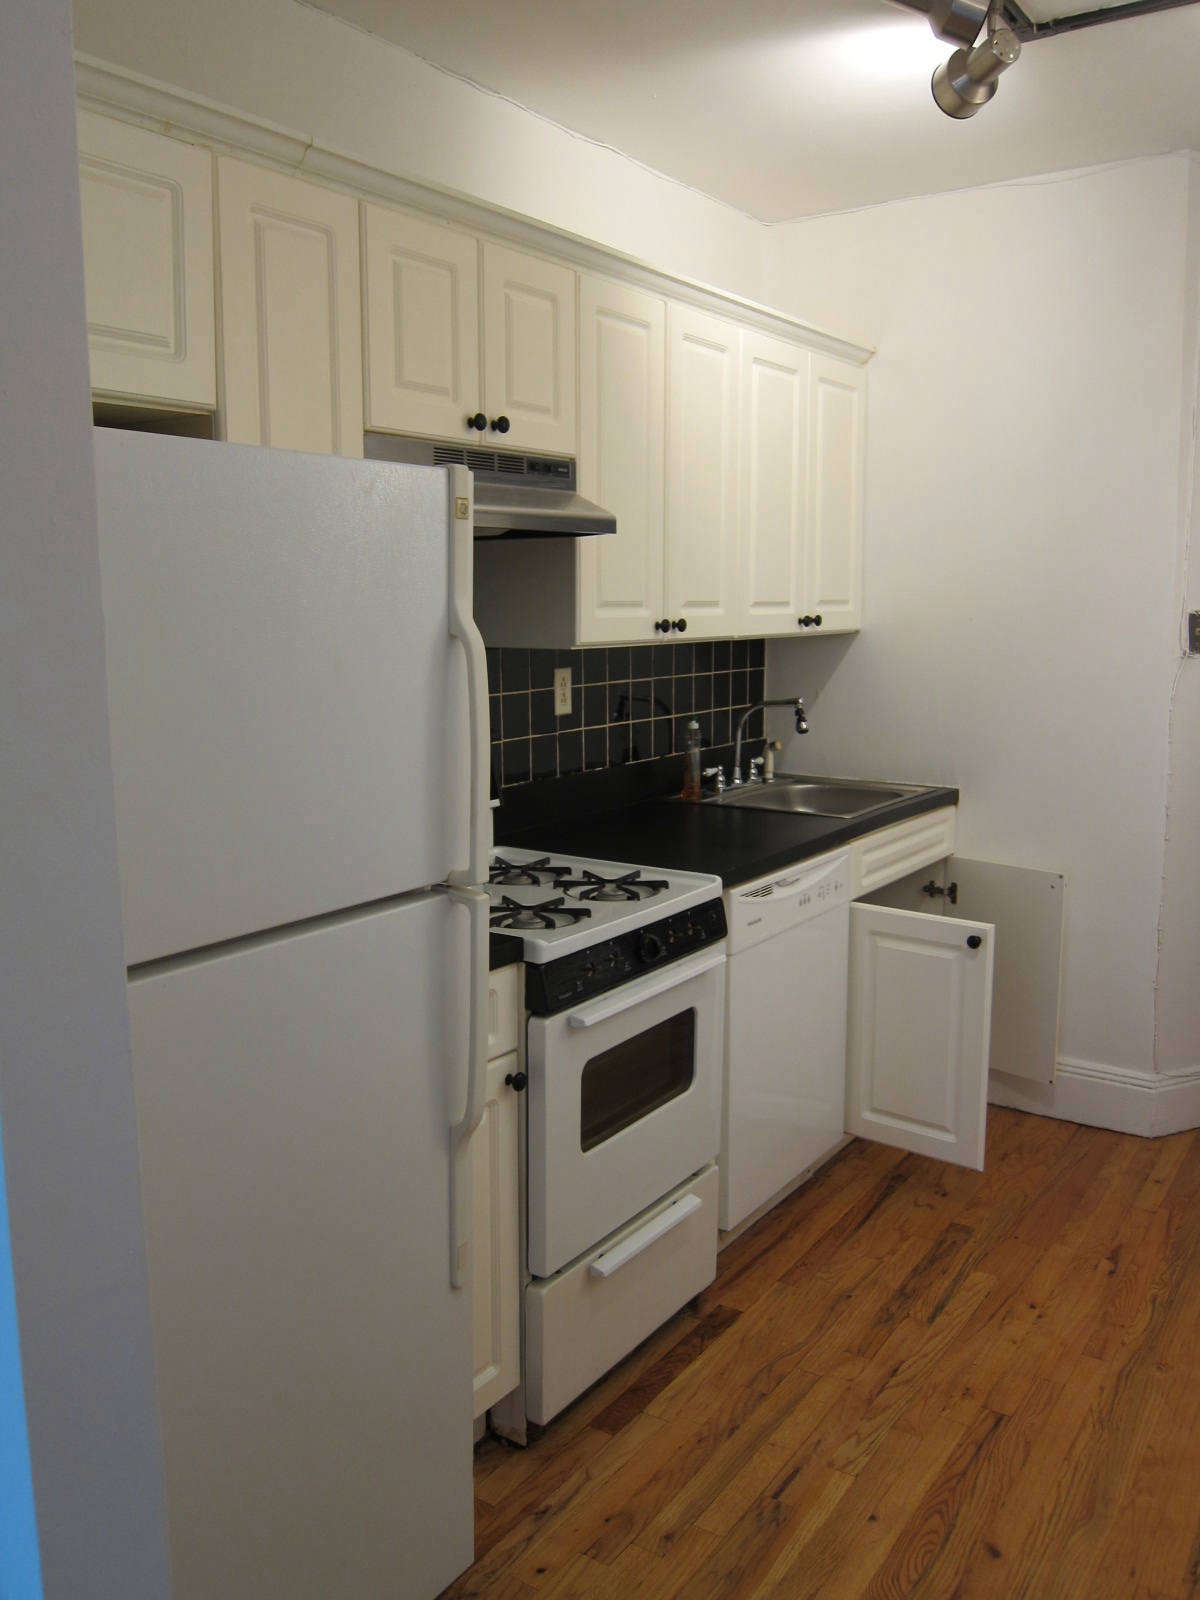 The dated galley kitchen, before.